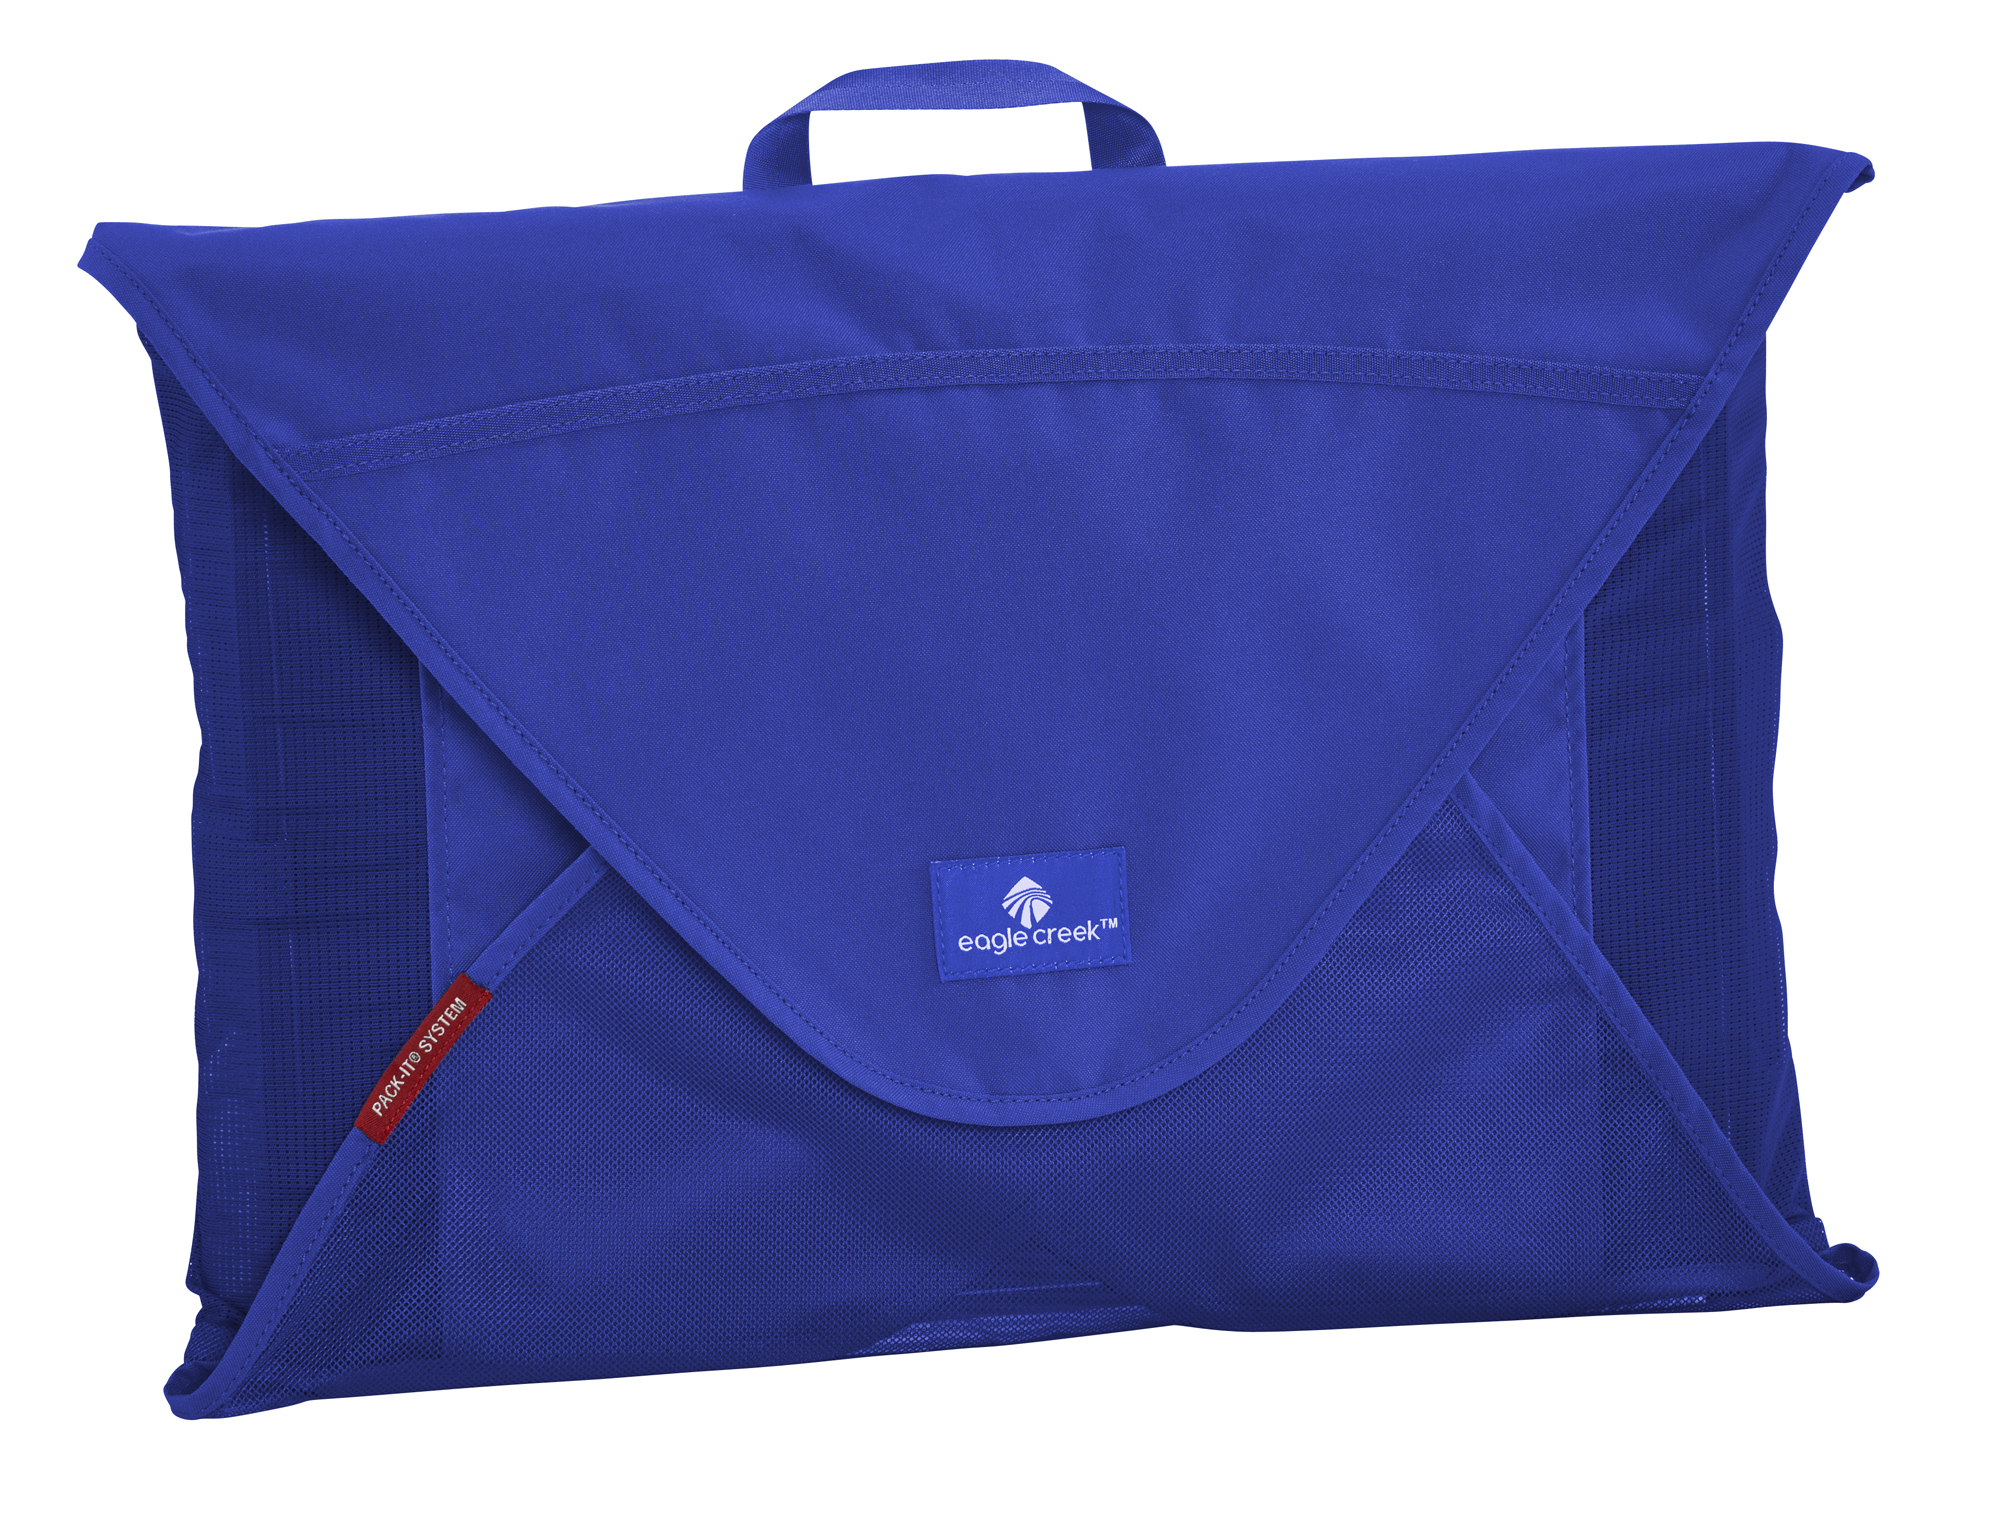 Pack-it Original Garment Folder